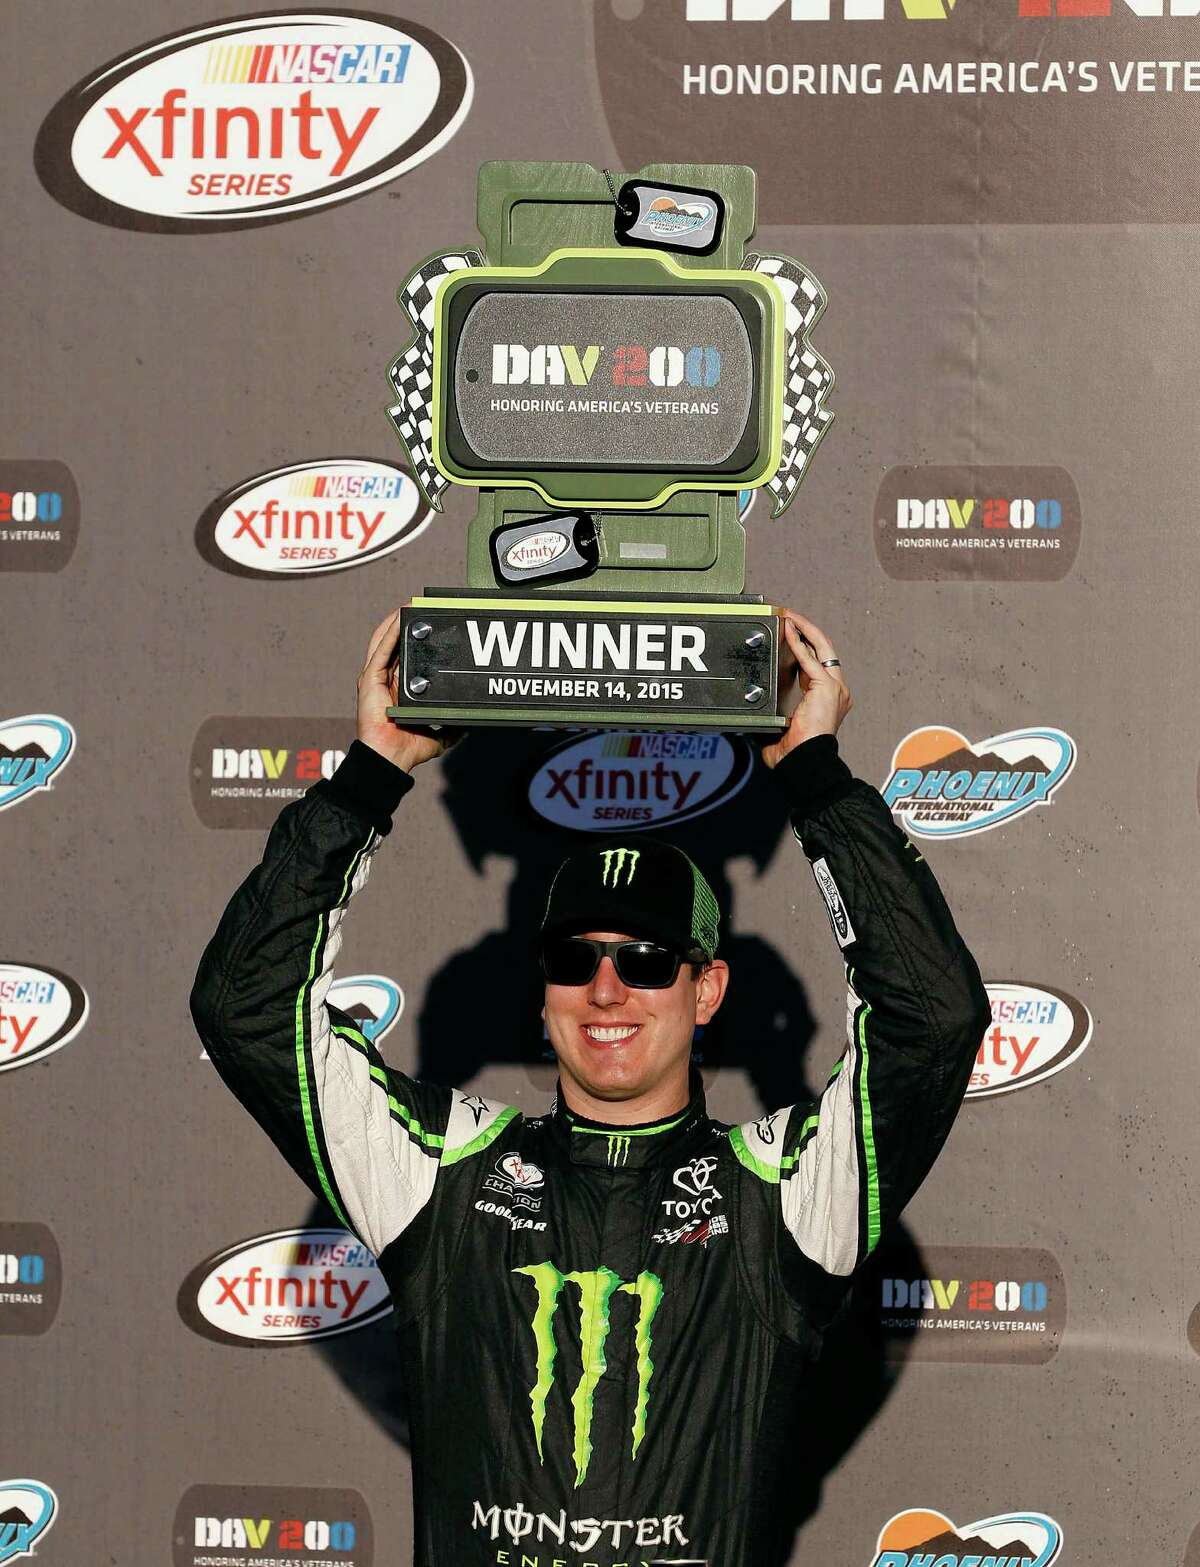 Kyle Busch celebrates in Victory Lane after winning the NASCAR Xfinity Series auto race at Phoenix International Raceway, Saturday, Nov. 14, 2015, in Avondale, Ariz. (AP Photo/Ralph Freso) ORG XMIT: AZRF216